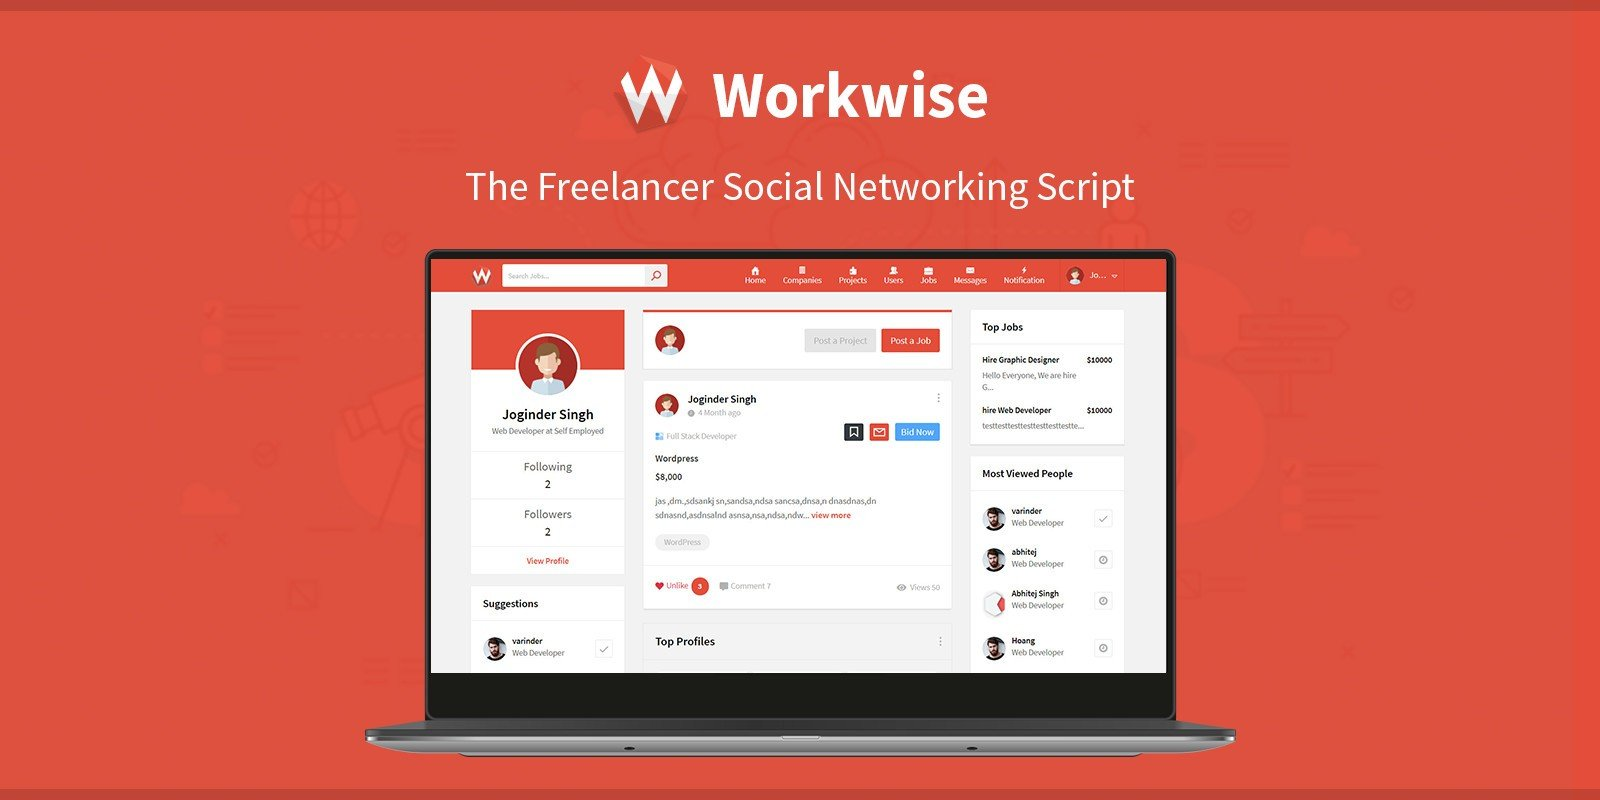 Workwise - The Freelancer Social Networking Script